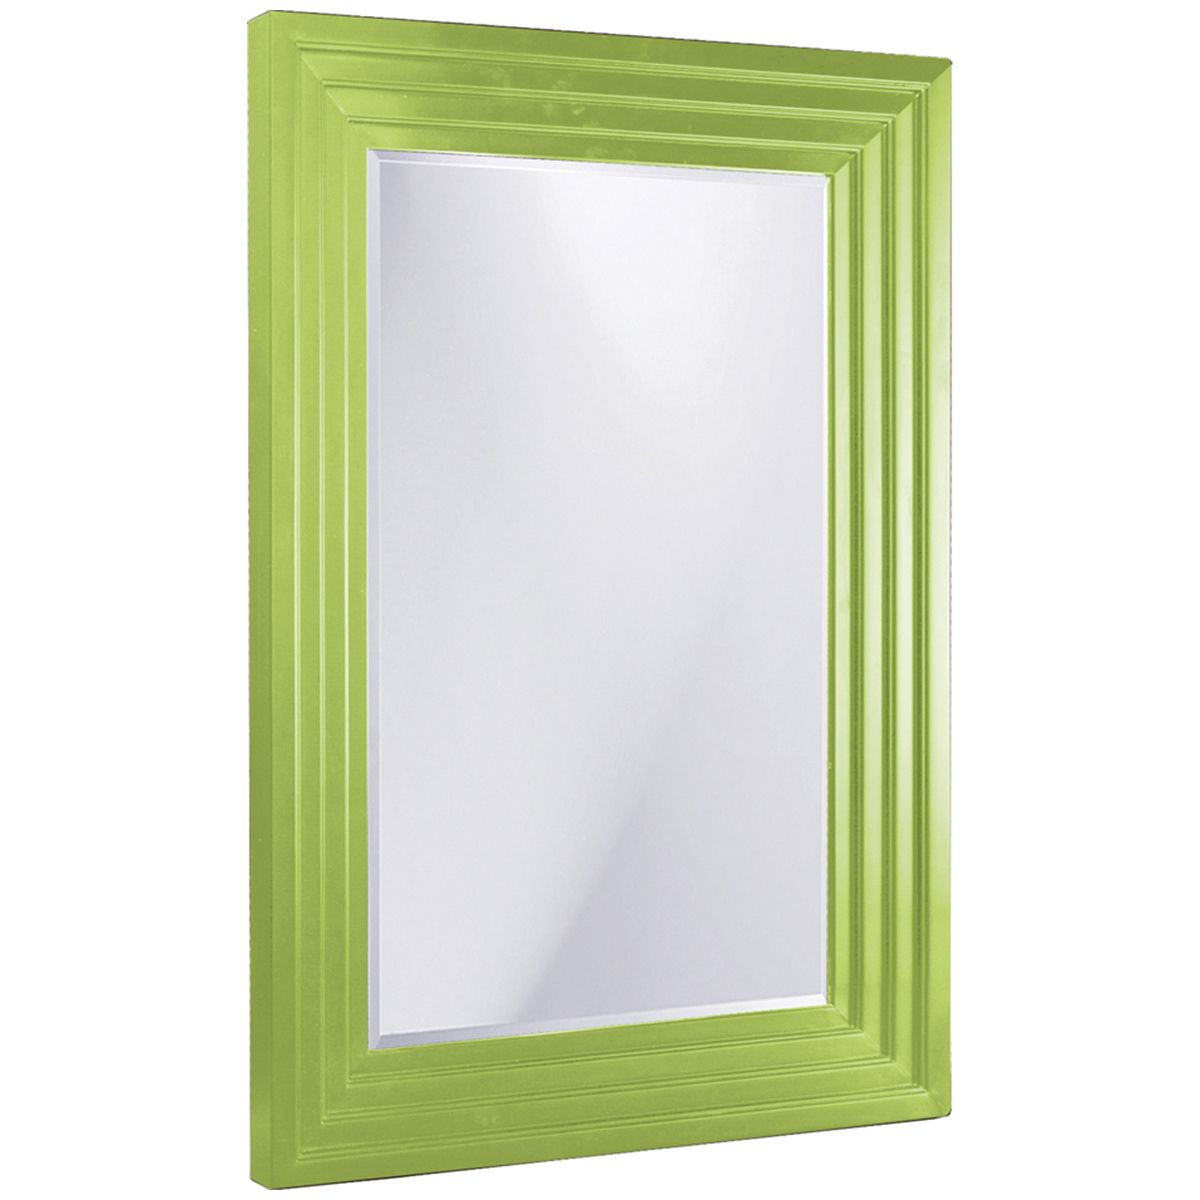 Howard Elliott Delano Green Small Mirror 43057smMG